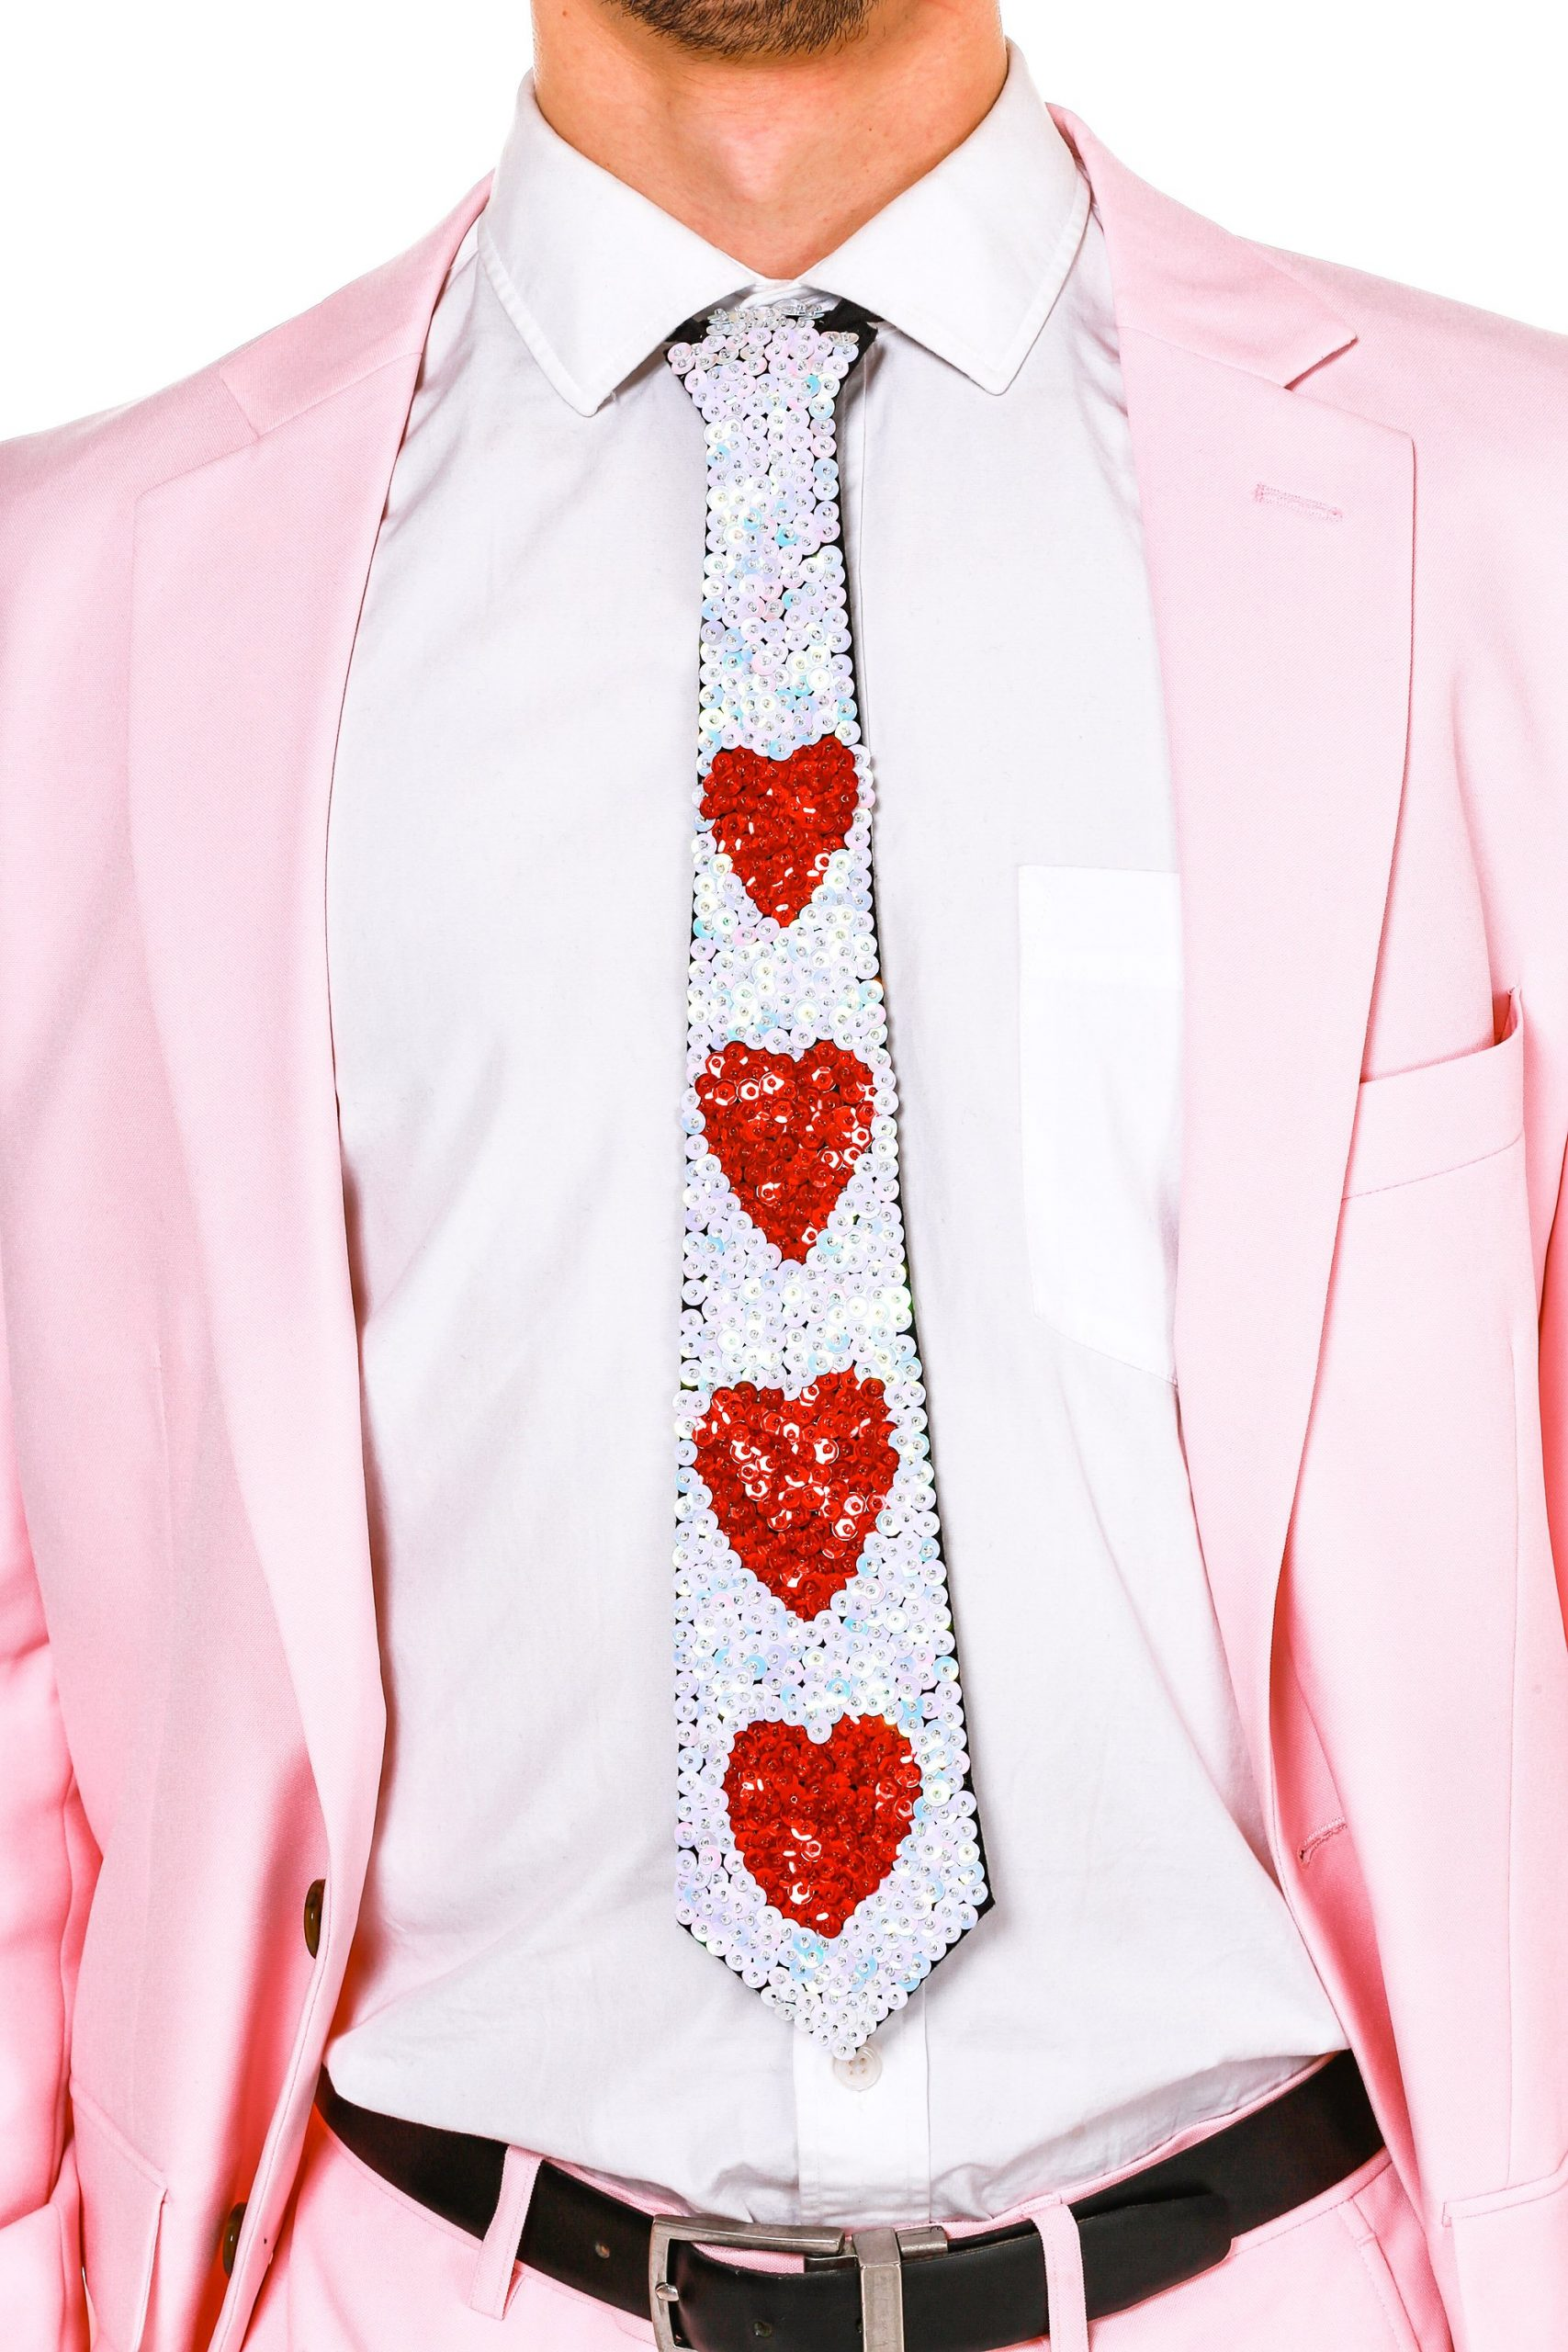 Red Heart Sequin Tie for Valentine's Day